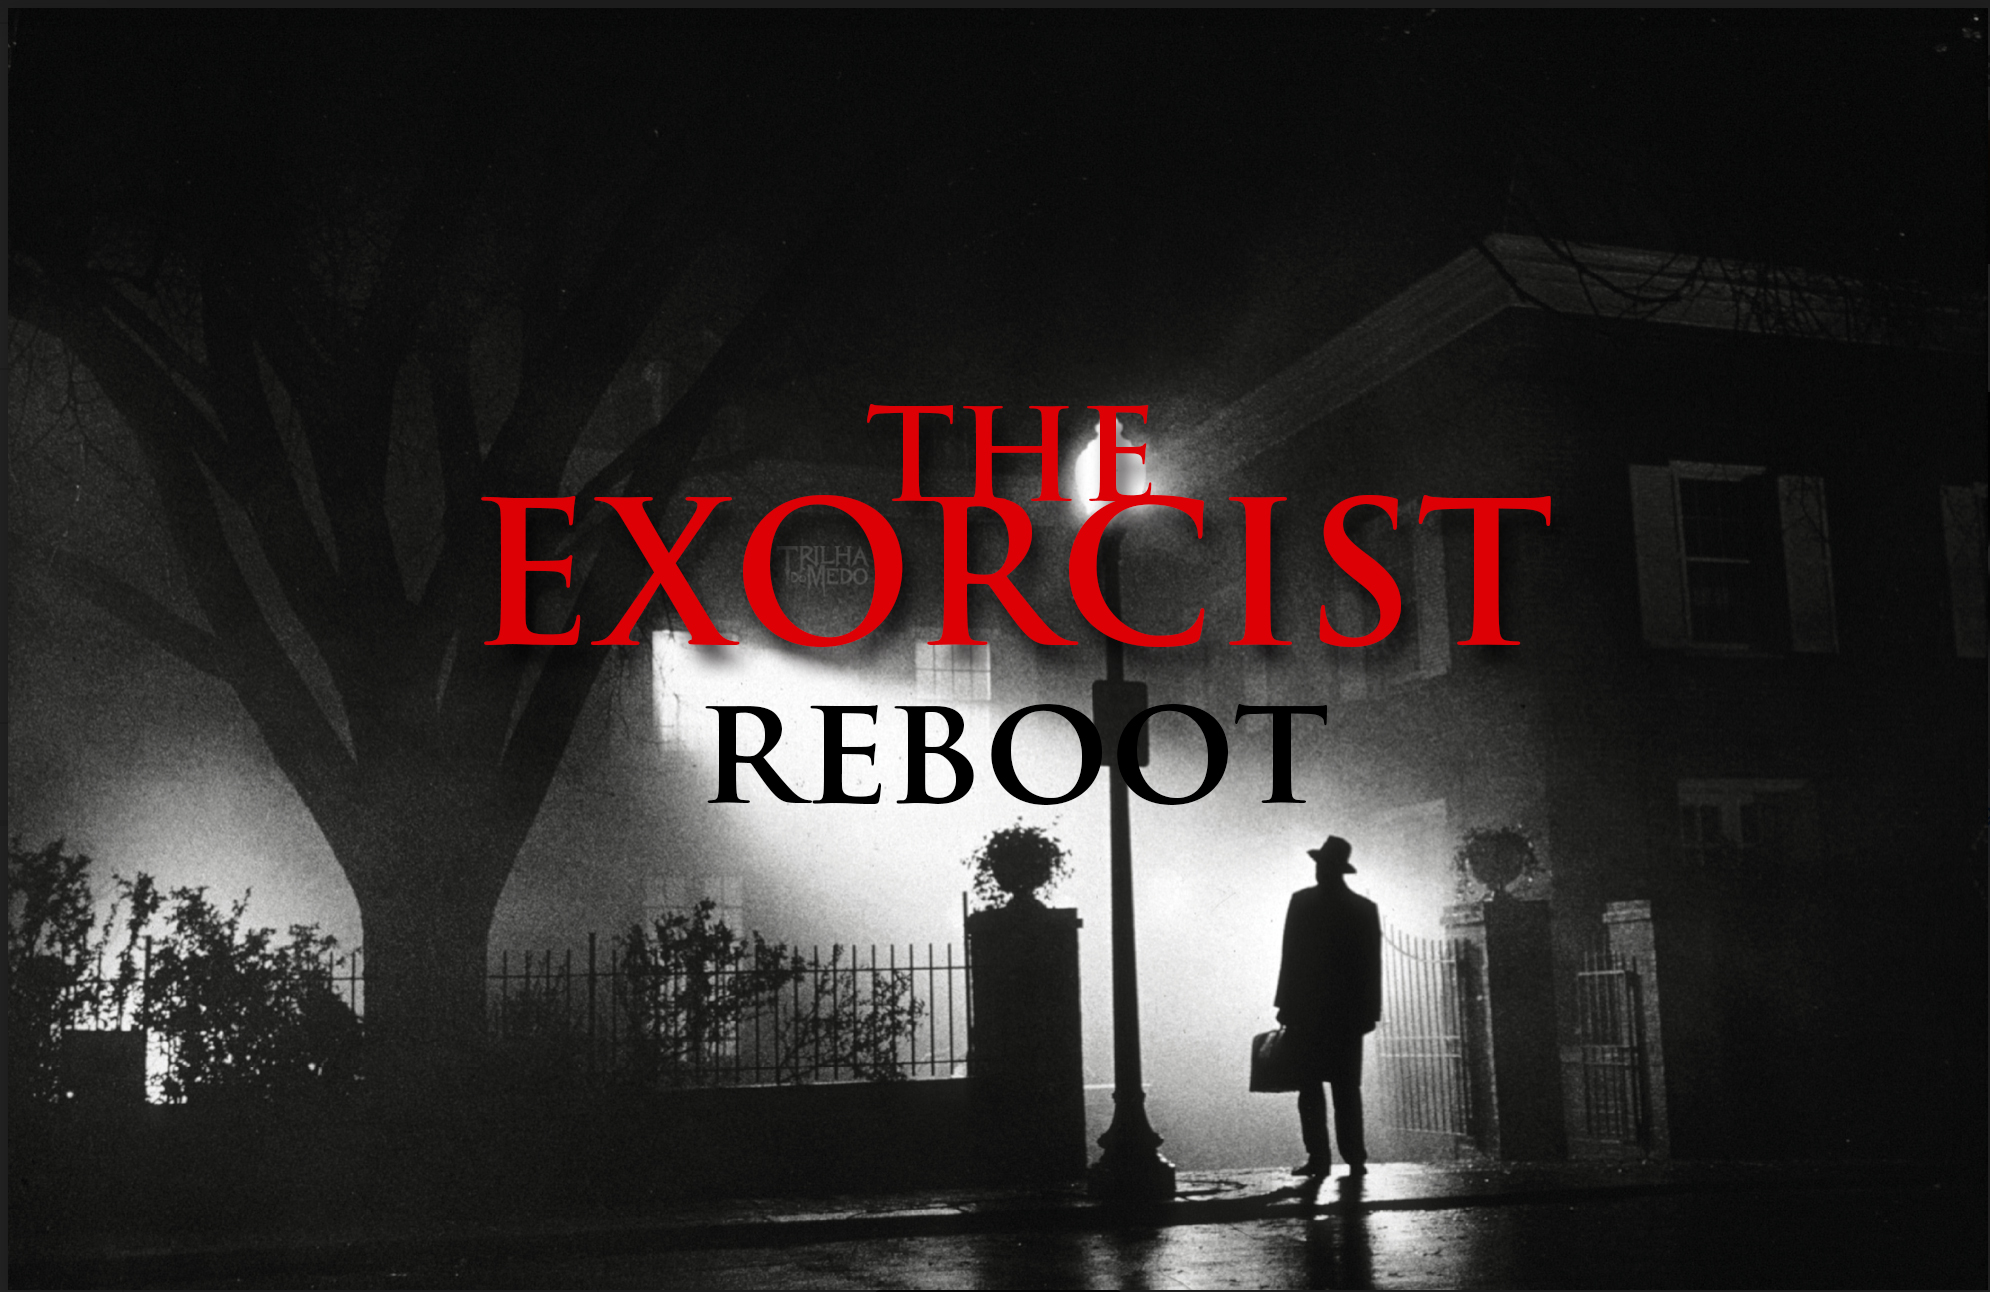 the-exorcist-reboot,-o-exorcista-reboot